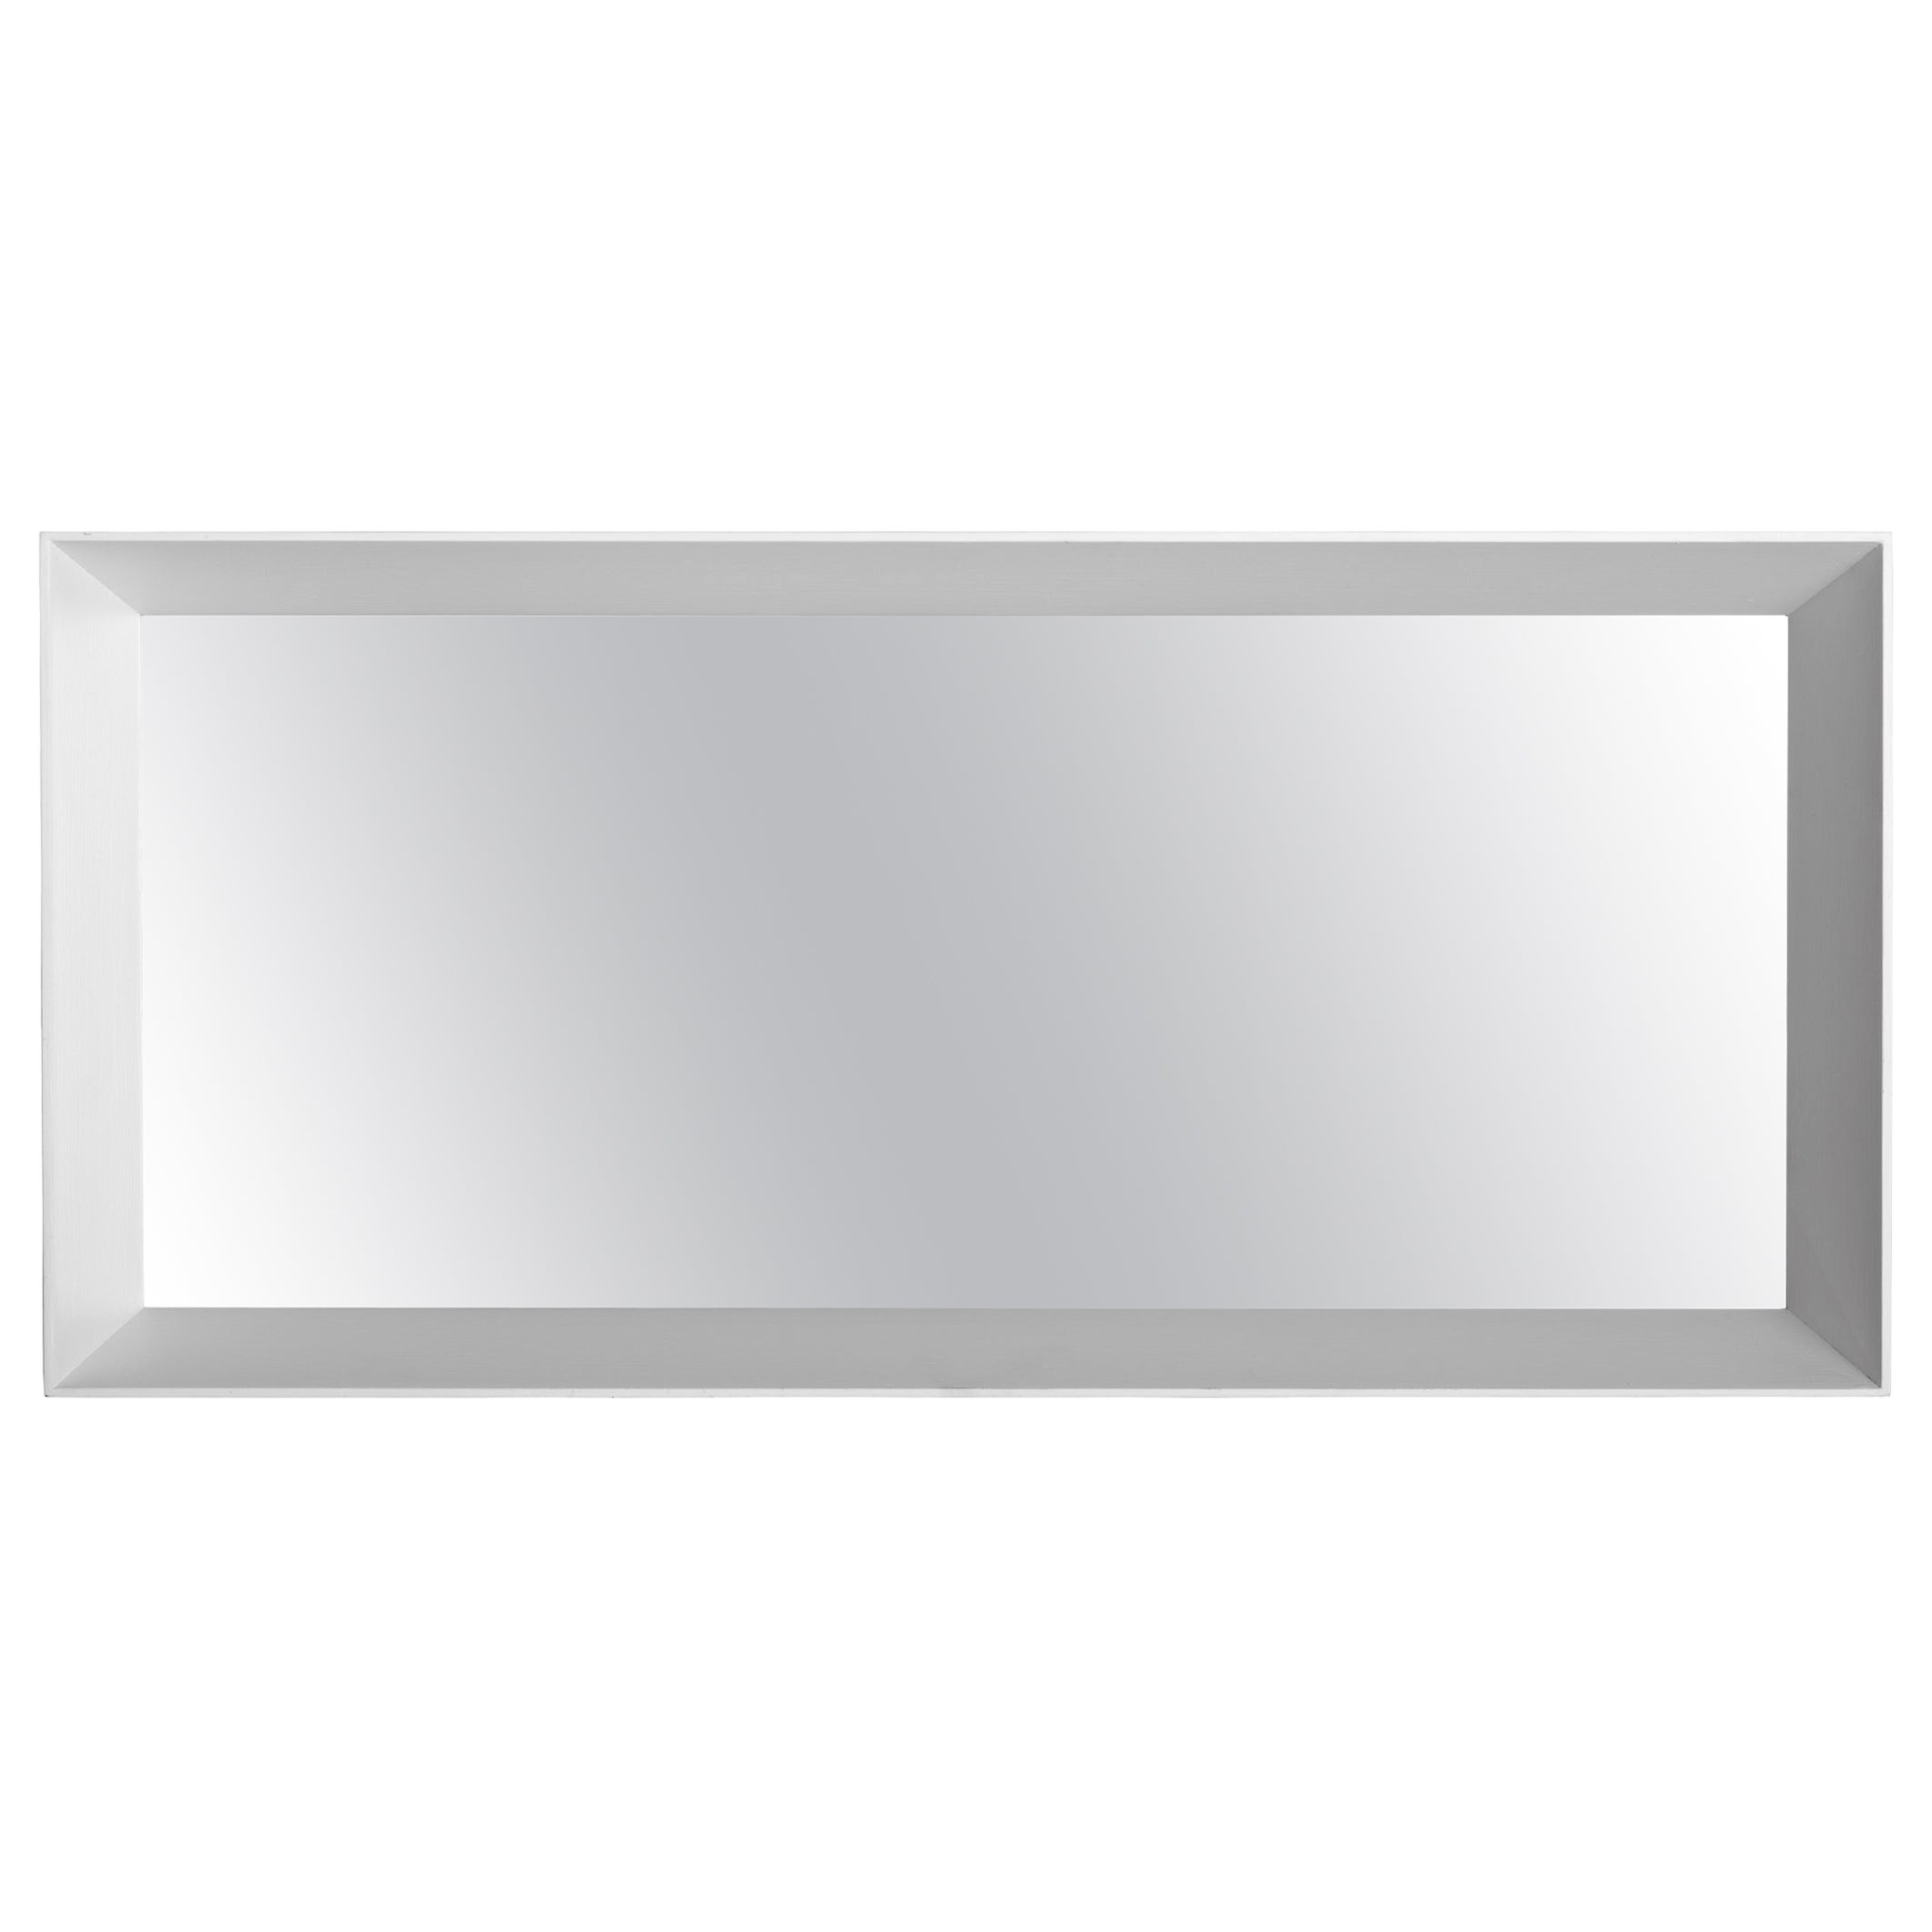 Molteni&C D.950.1E Small Framed Mirror in Toulipier Wood by Gio Ponti